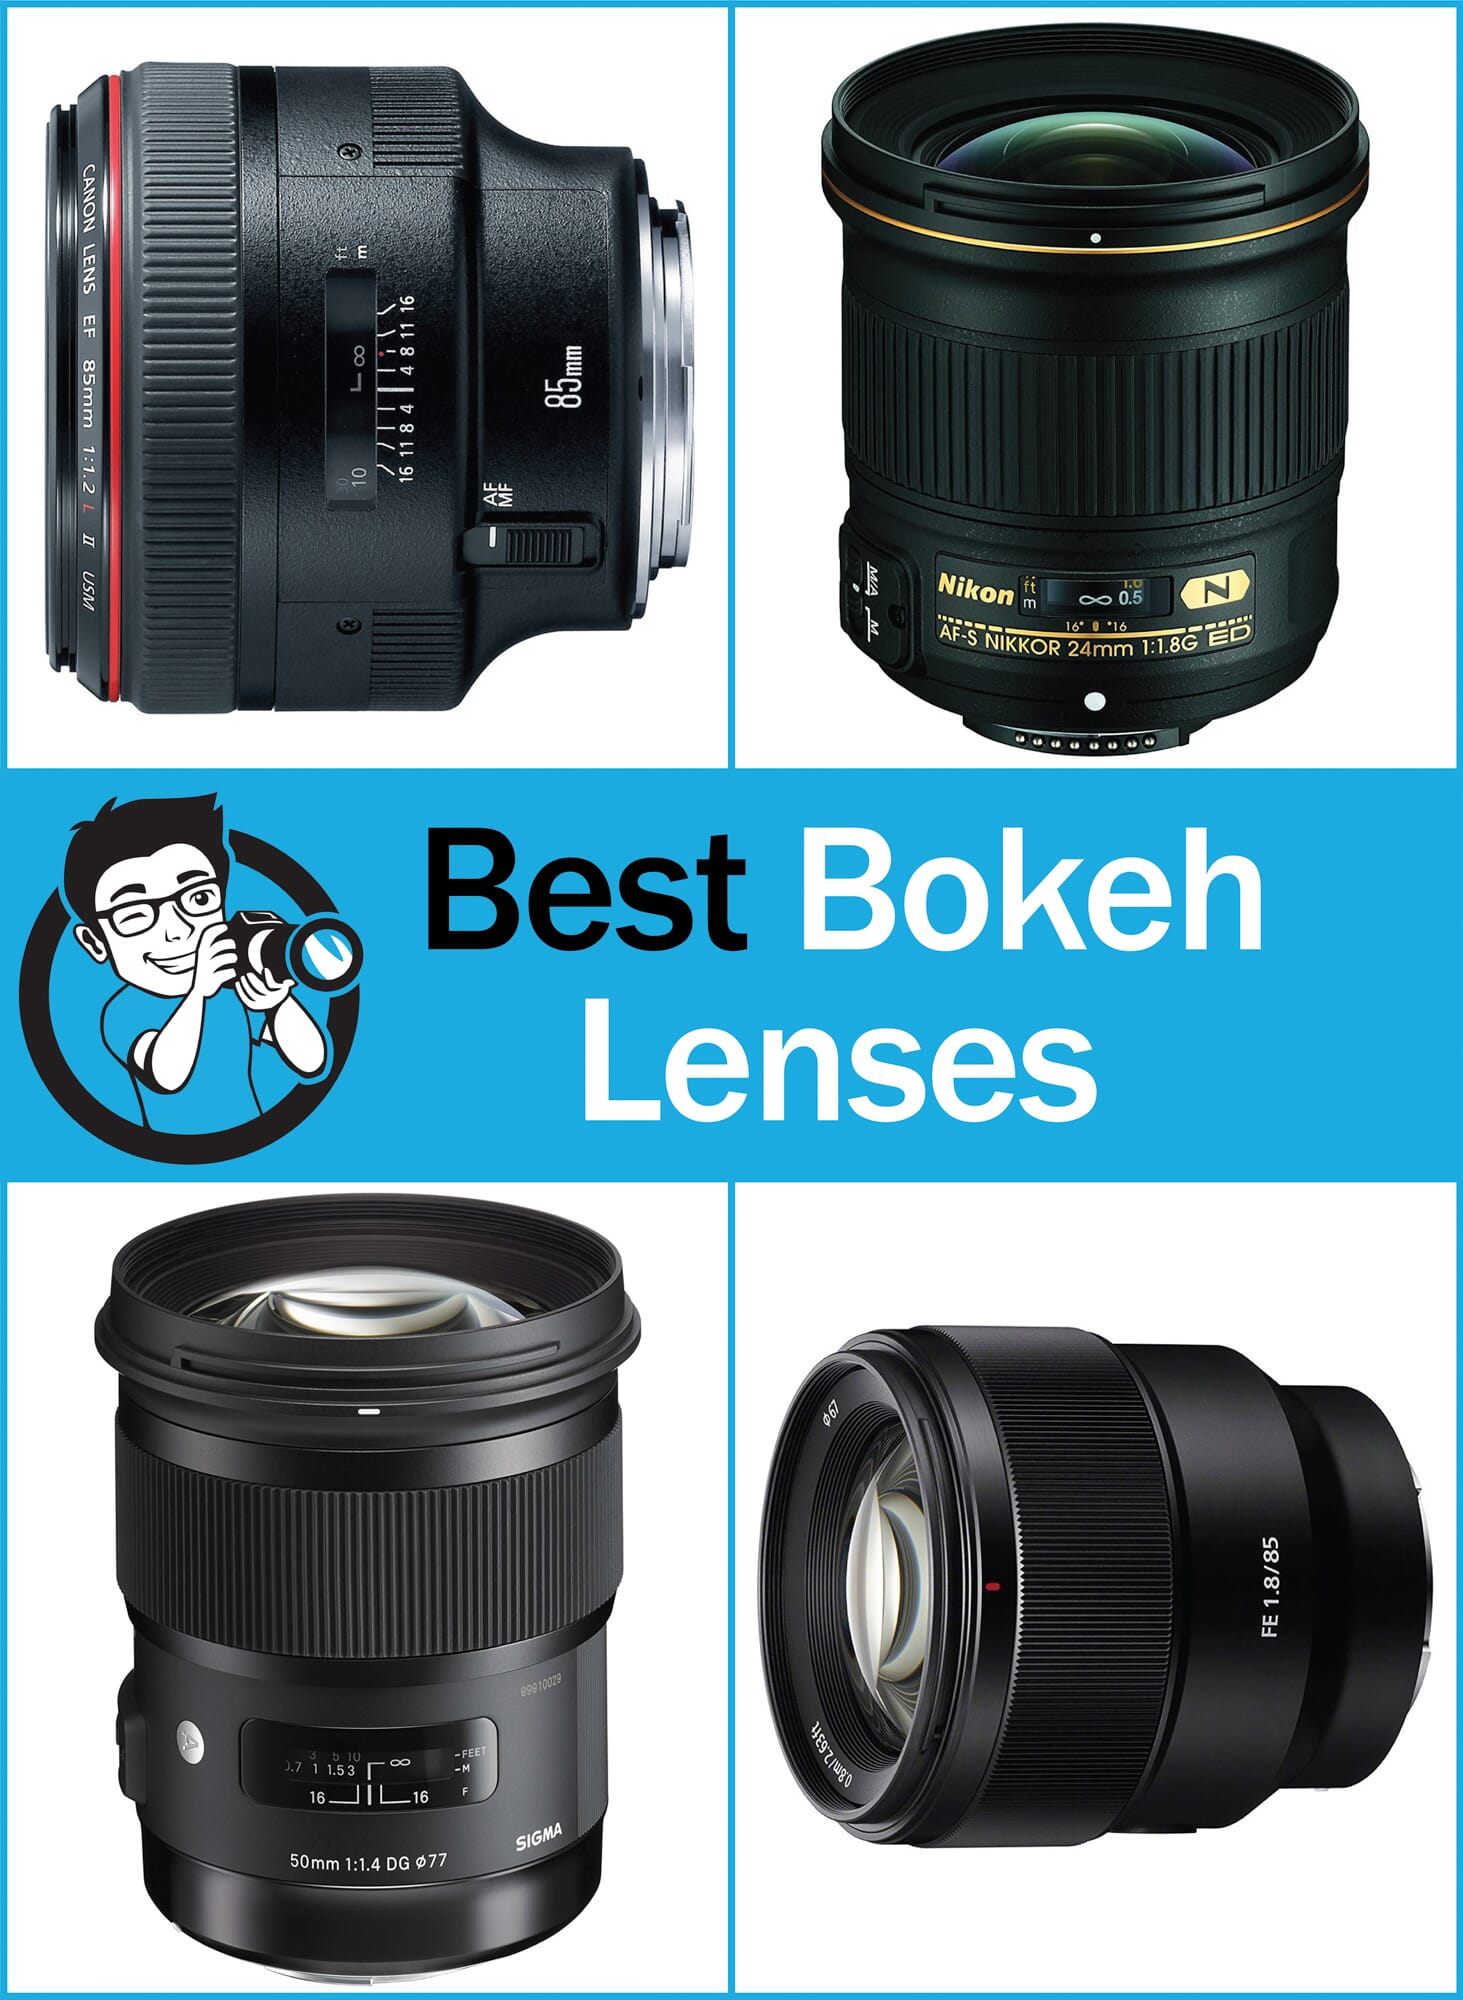 The Best Bokeh Lenses To Give Your Photos A Dreamy Blurry